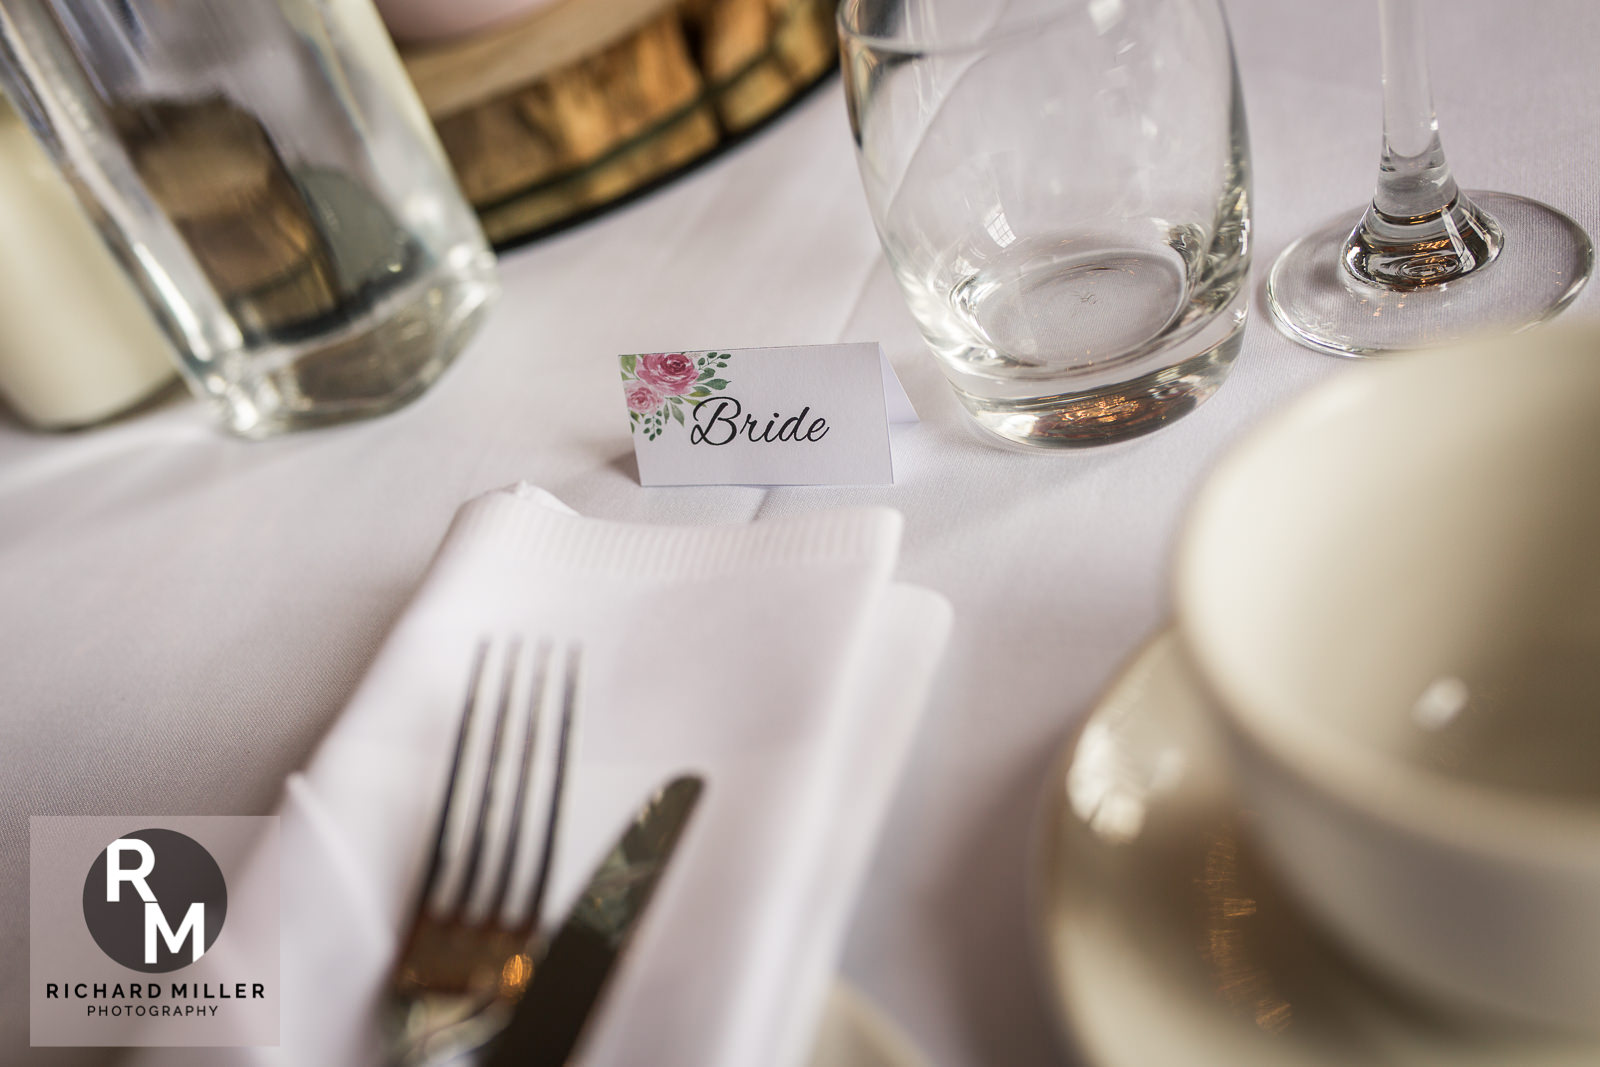 Dale Natalie Web 304 - An Awesome Chester Wedding at Oddfellows